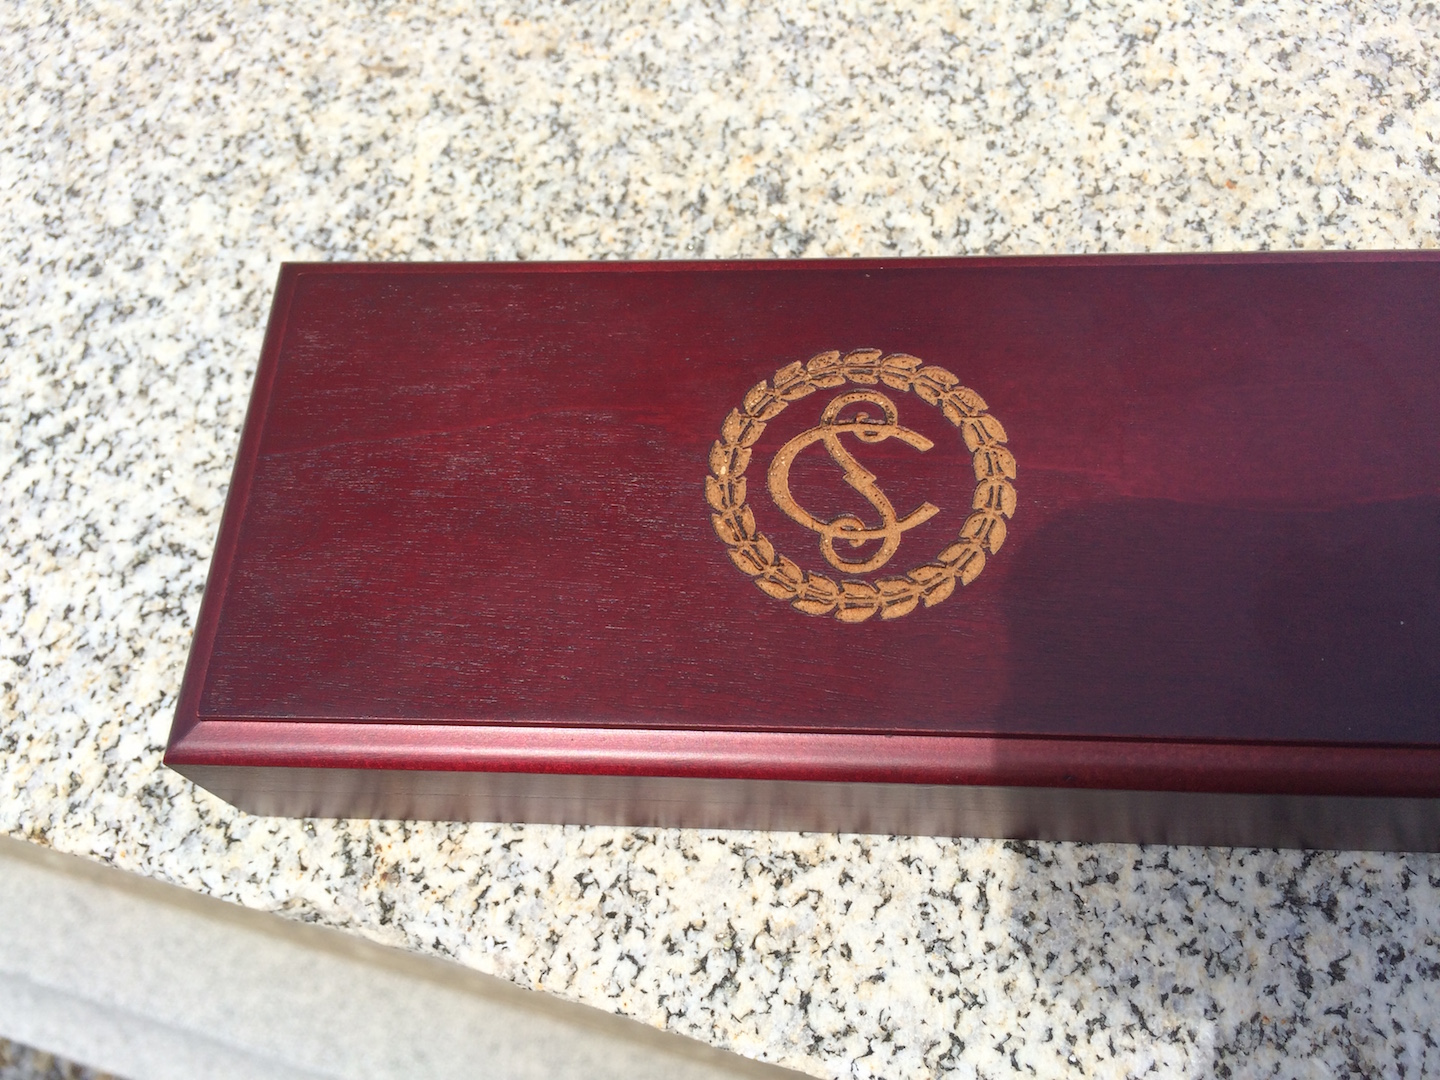 Engraved Box for Supreme Court